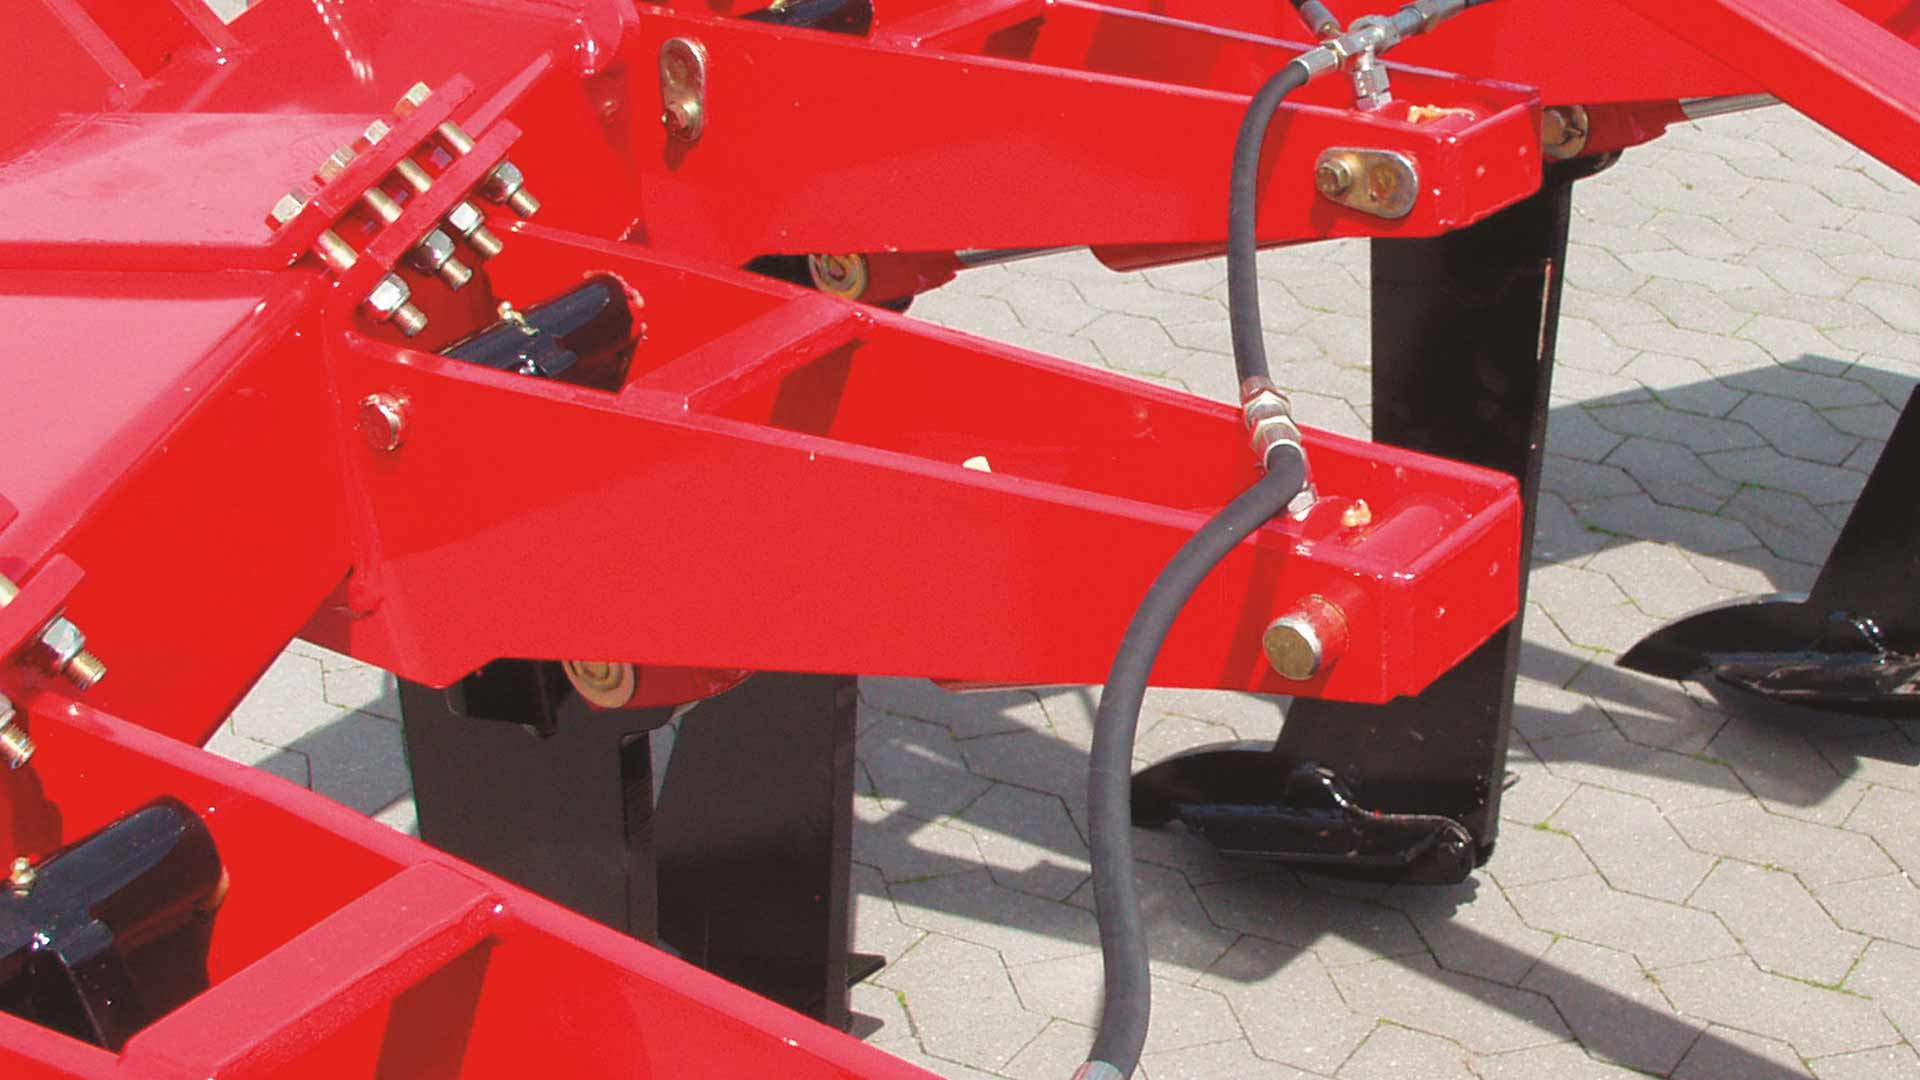 When dealing with stony soil types, the hydraulic stone protection system is the best choice. A cylinder on each tine ensures that the tines automatically swing upwards when hitting a rock.